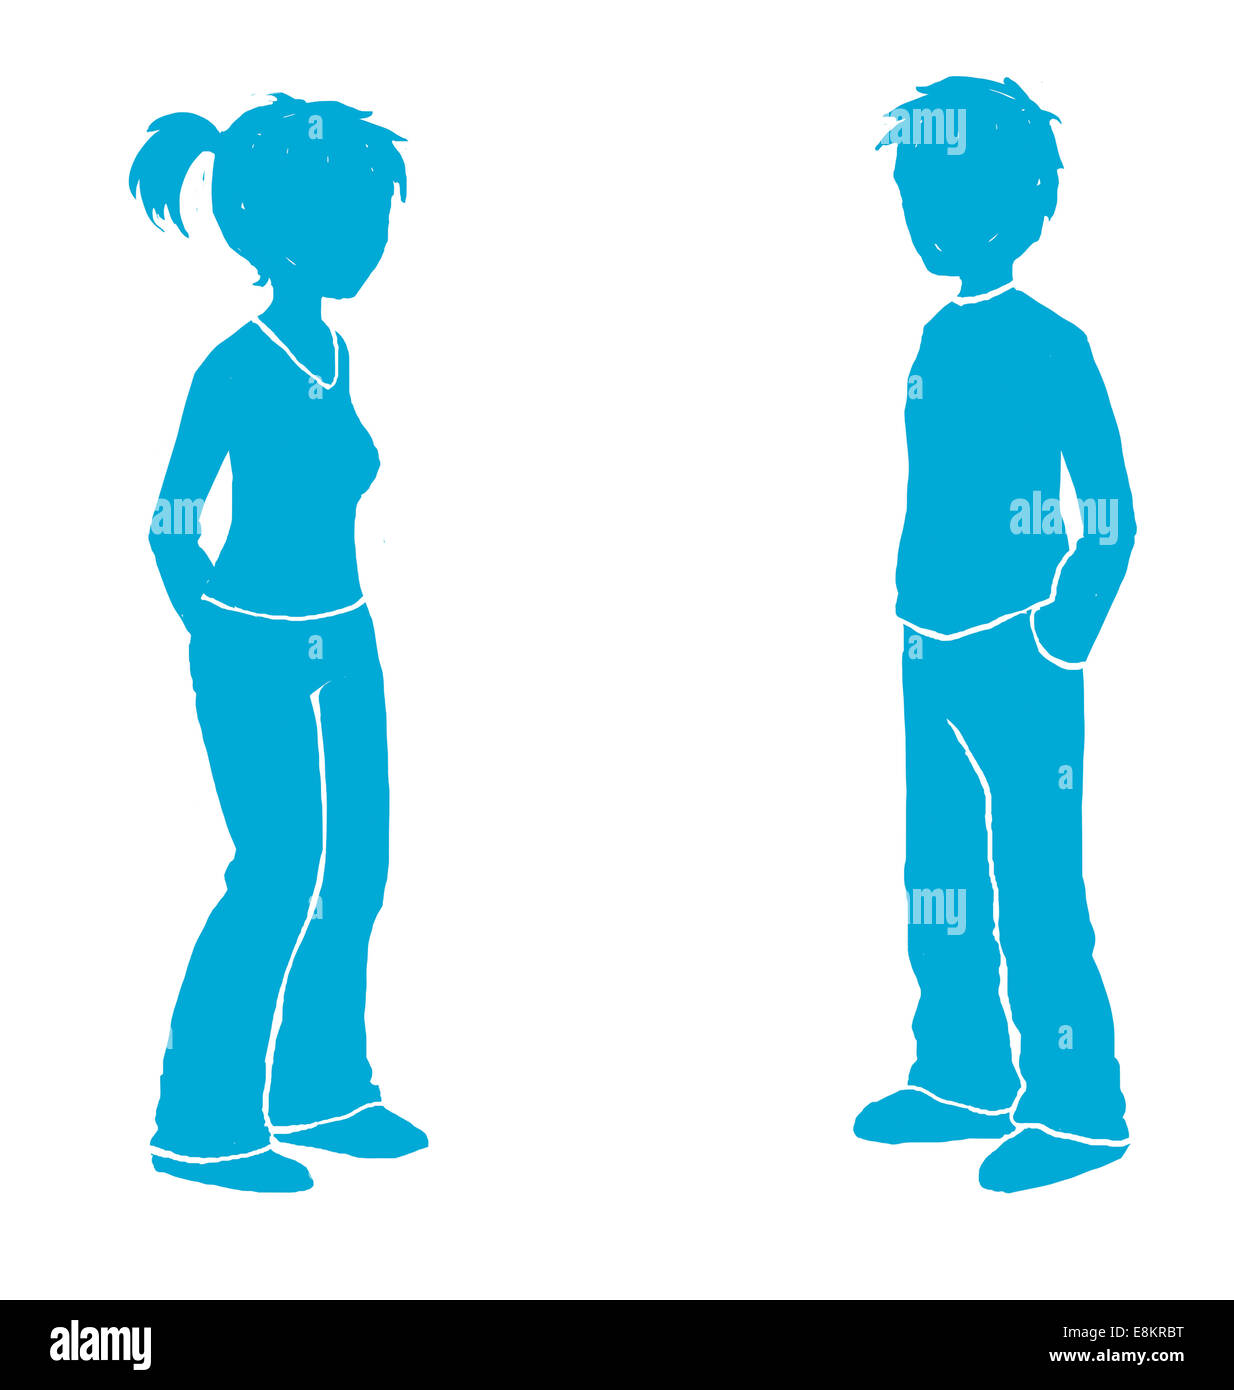 Pictogram of a young woman and man. - Stock Image